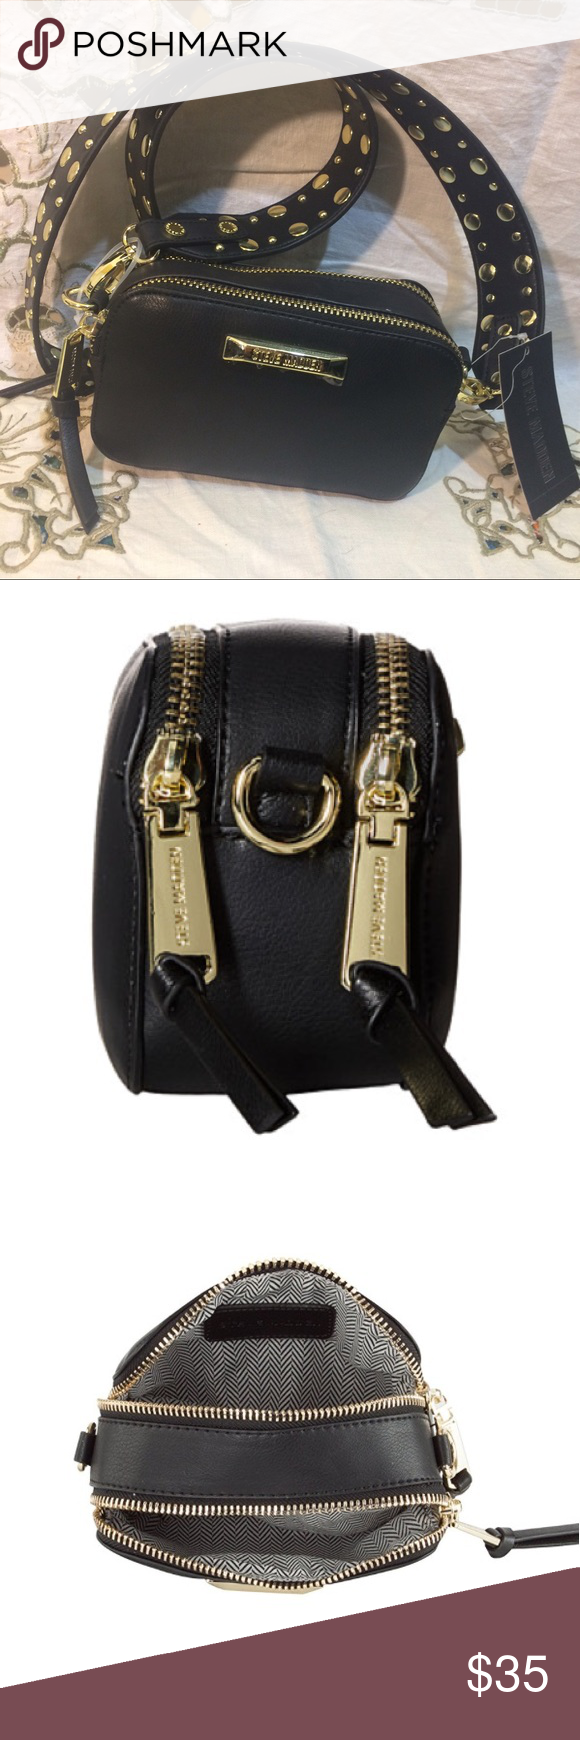 Steve Madden bwallace color block bag Black with gold Steve Madden Wallace  color block bag.